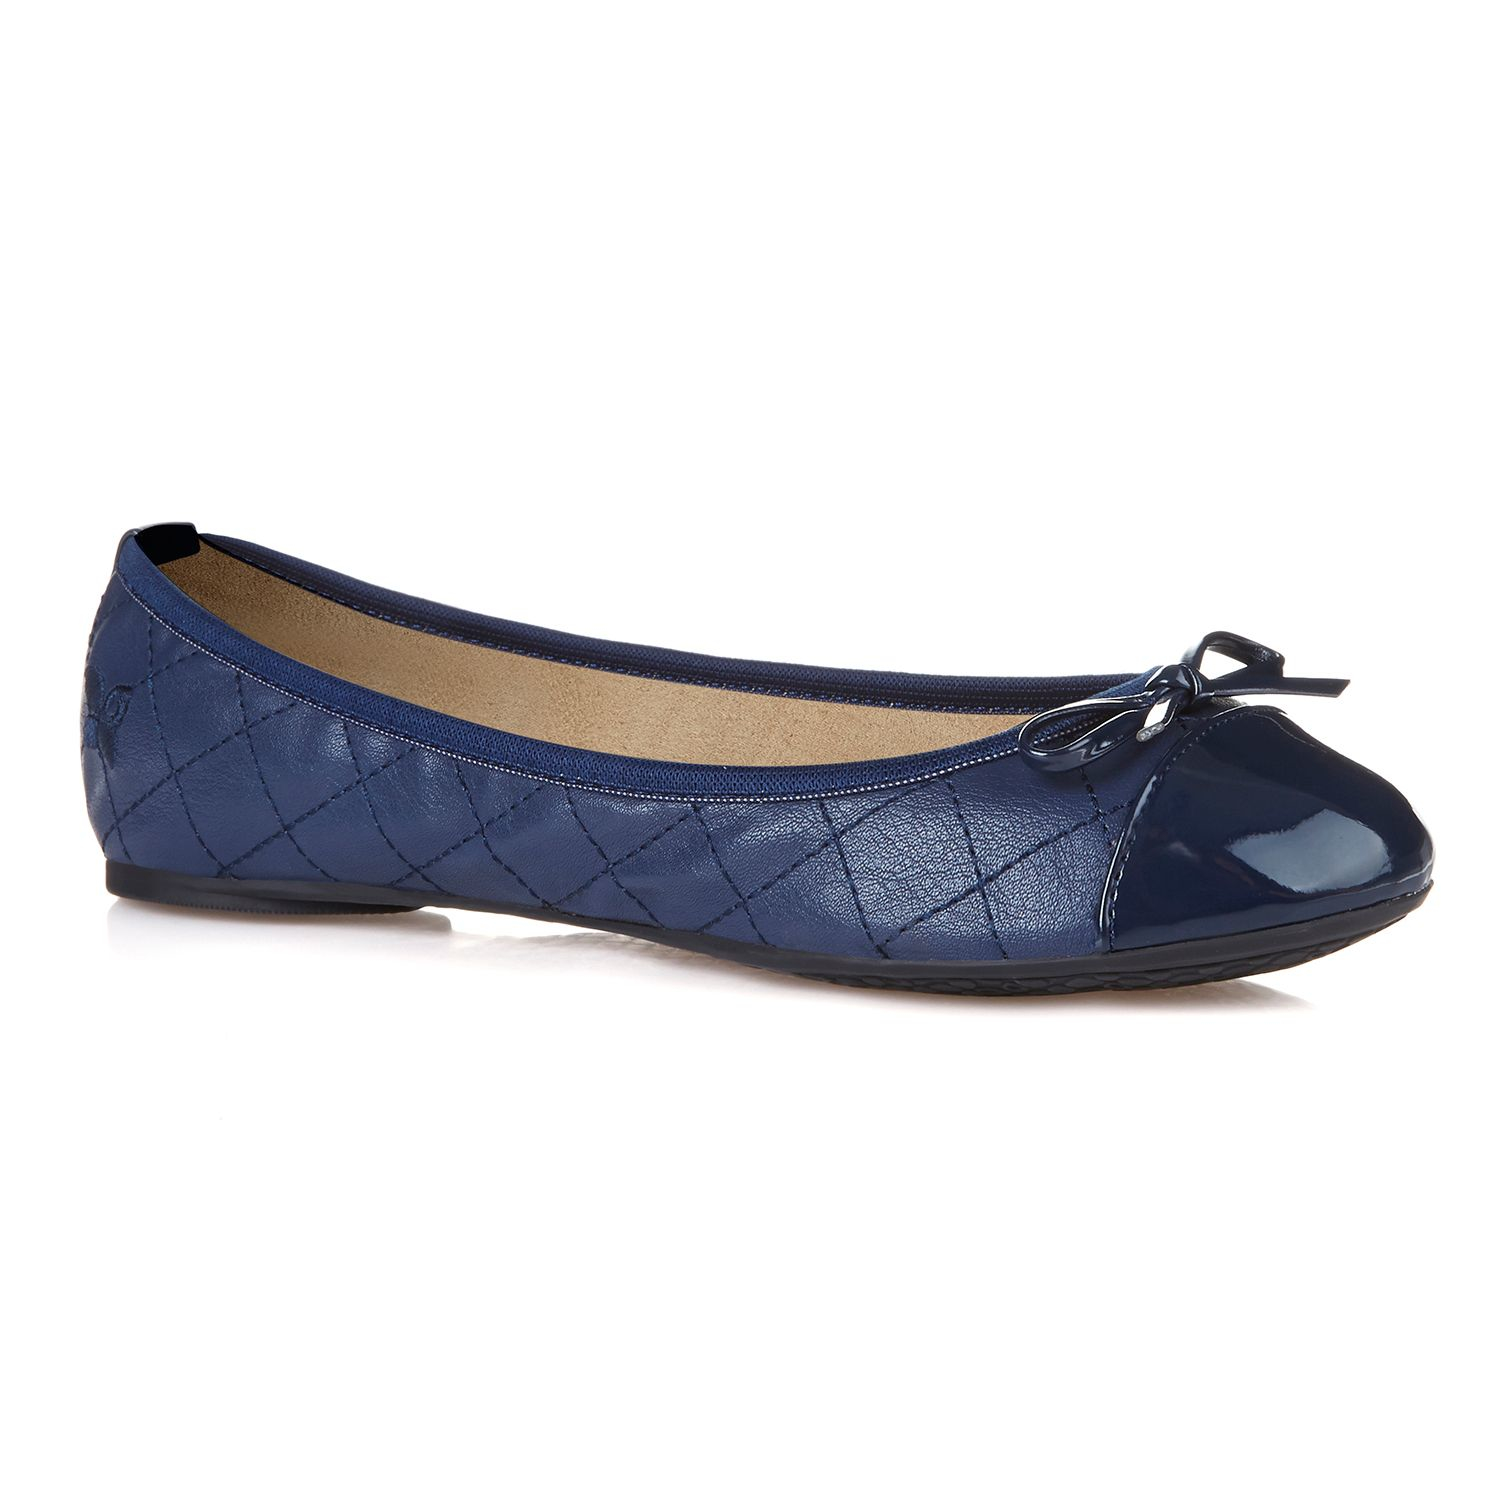 butterfly twists olivia foldable ballerina pumps in blue navy lyst. Black Bedroom Furniture Sets. Home Design Ideas